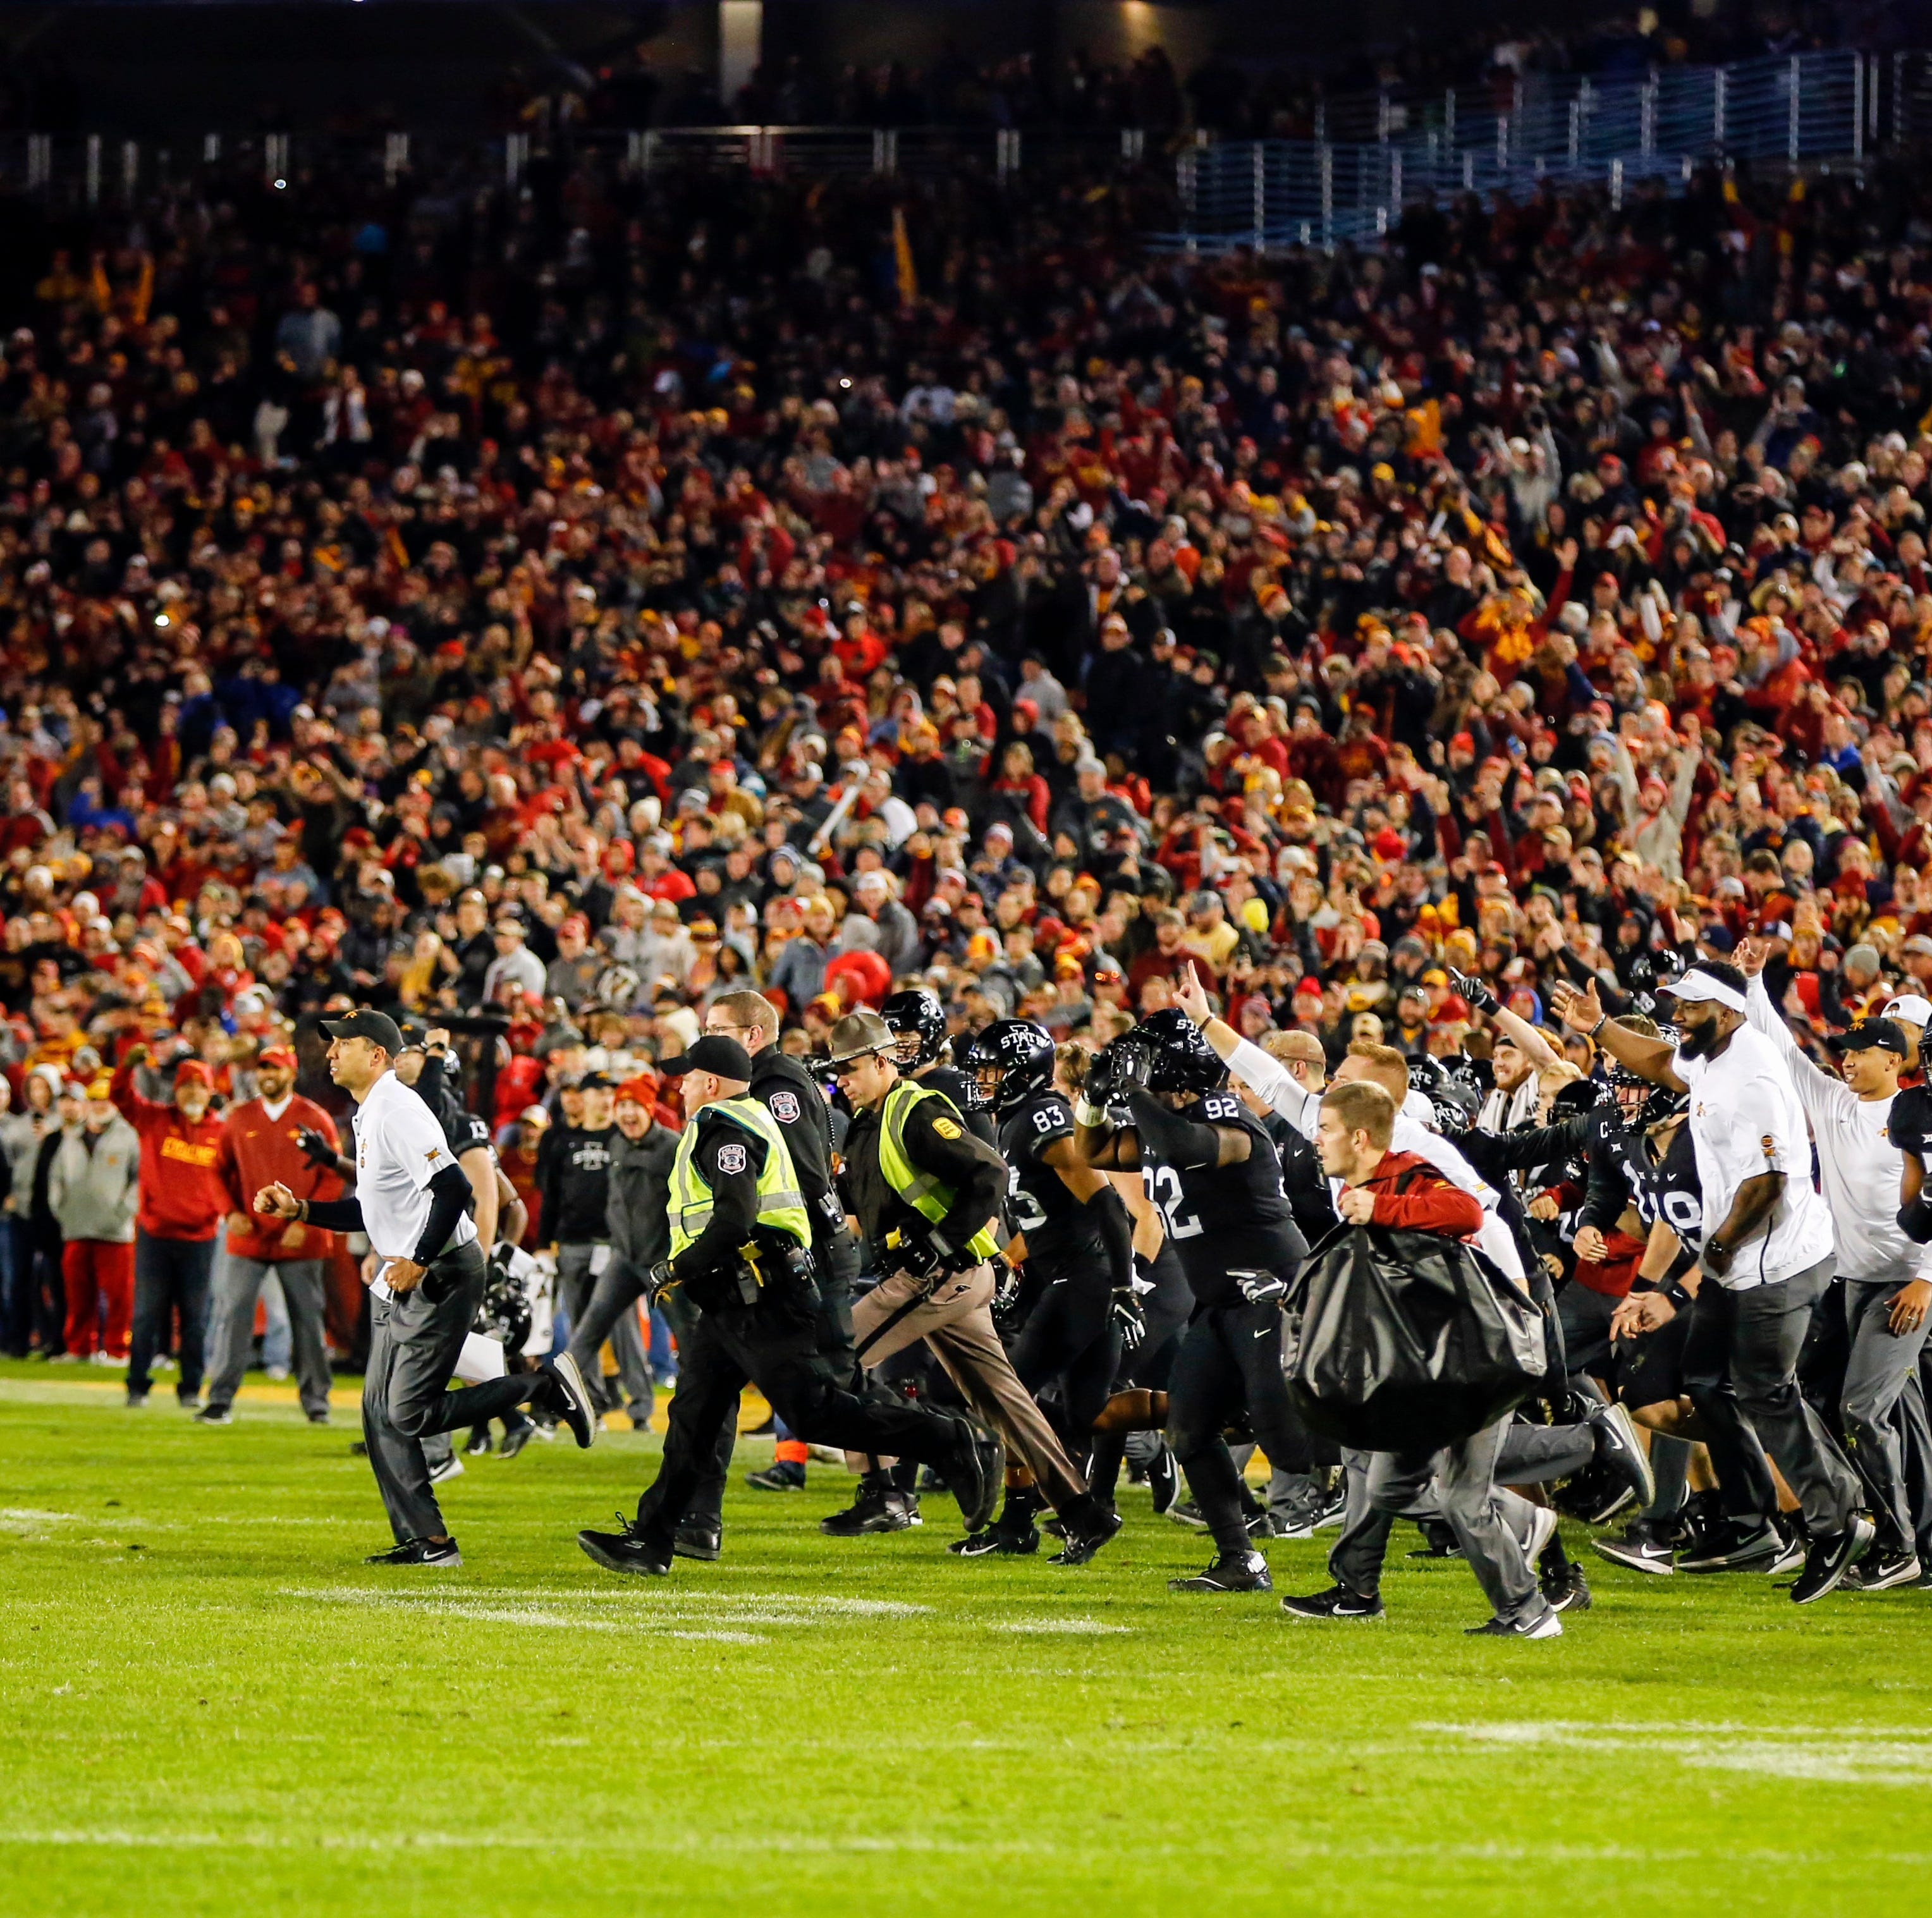 Big 12 punishes Iowa State following field-storming after West Virginia upset